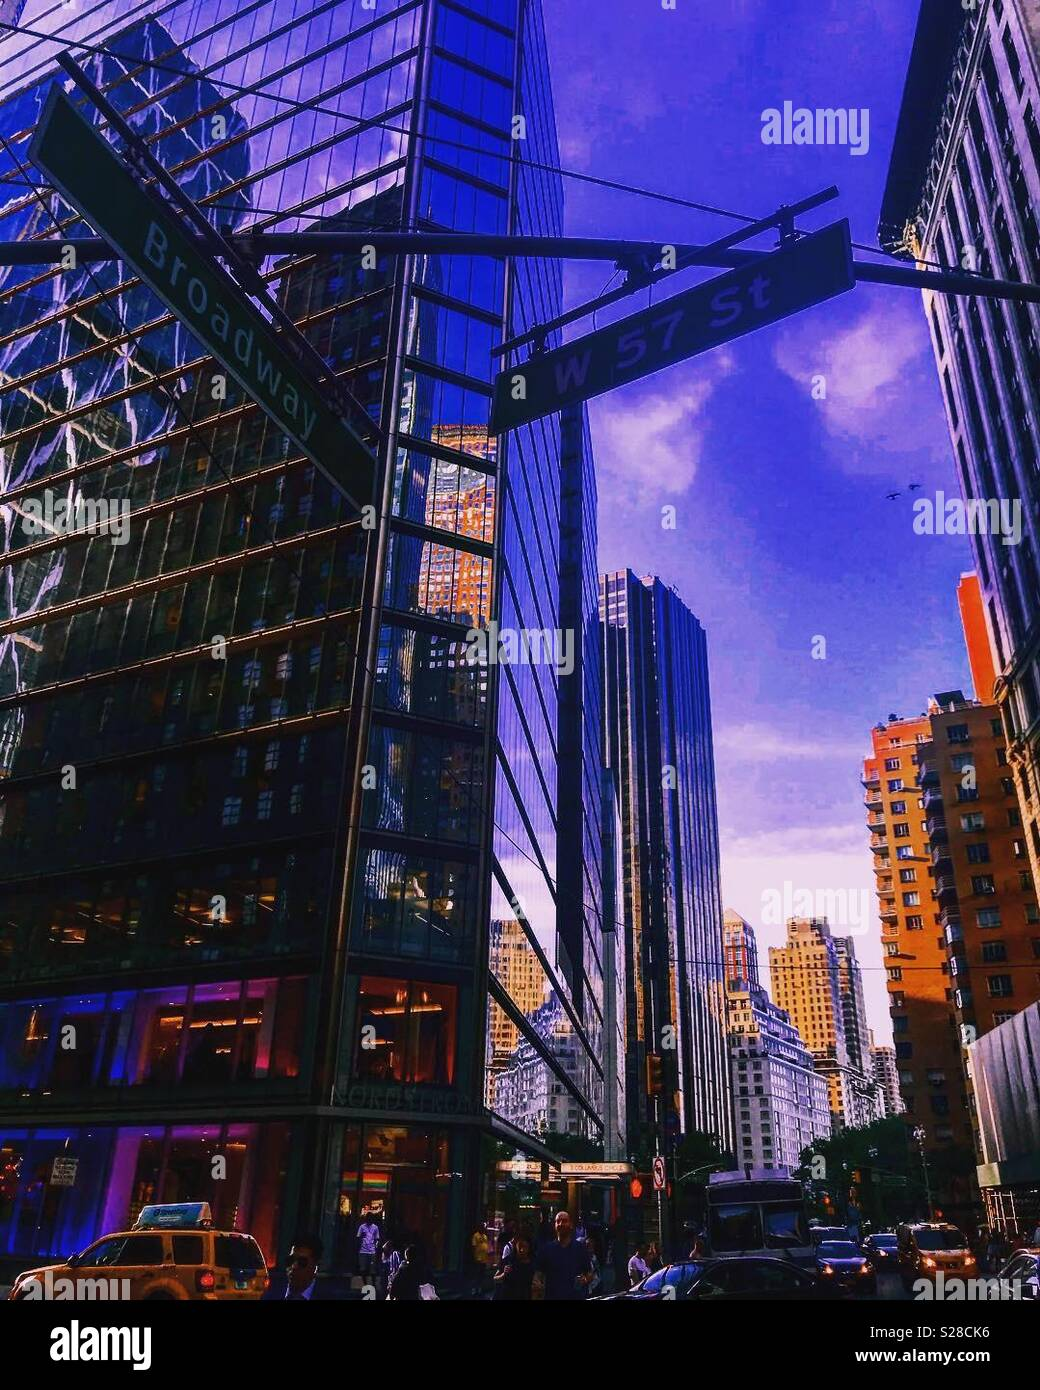 57th and Broadway - NYC - Stock Image